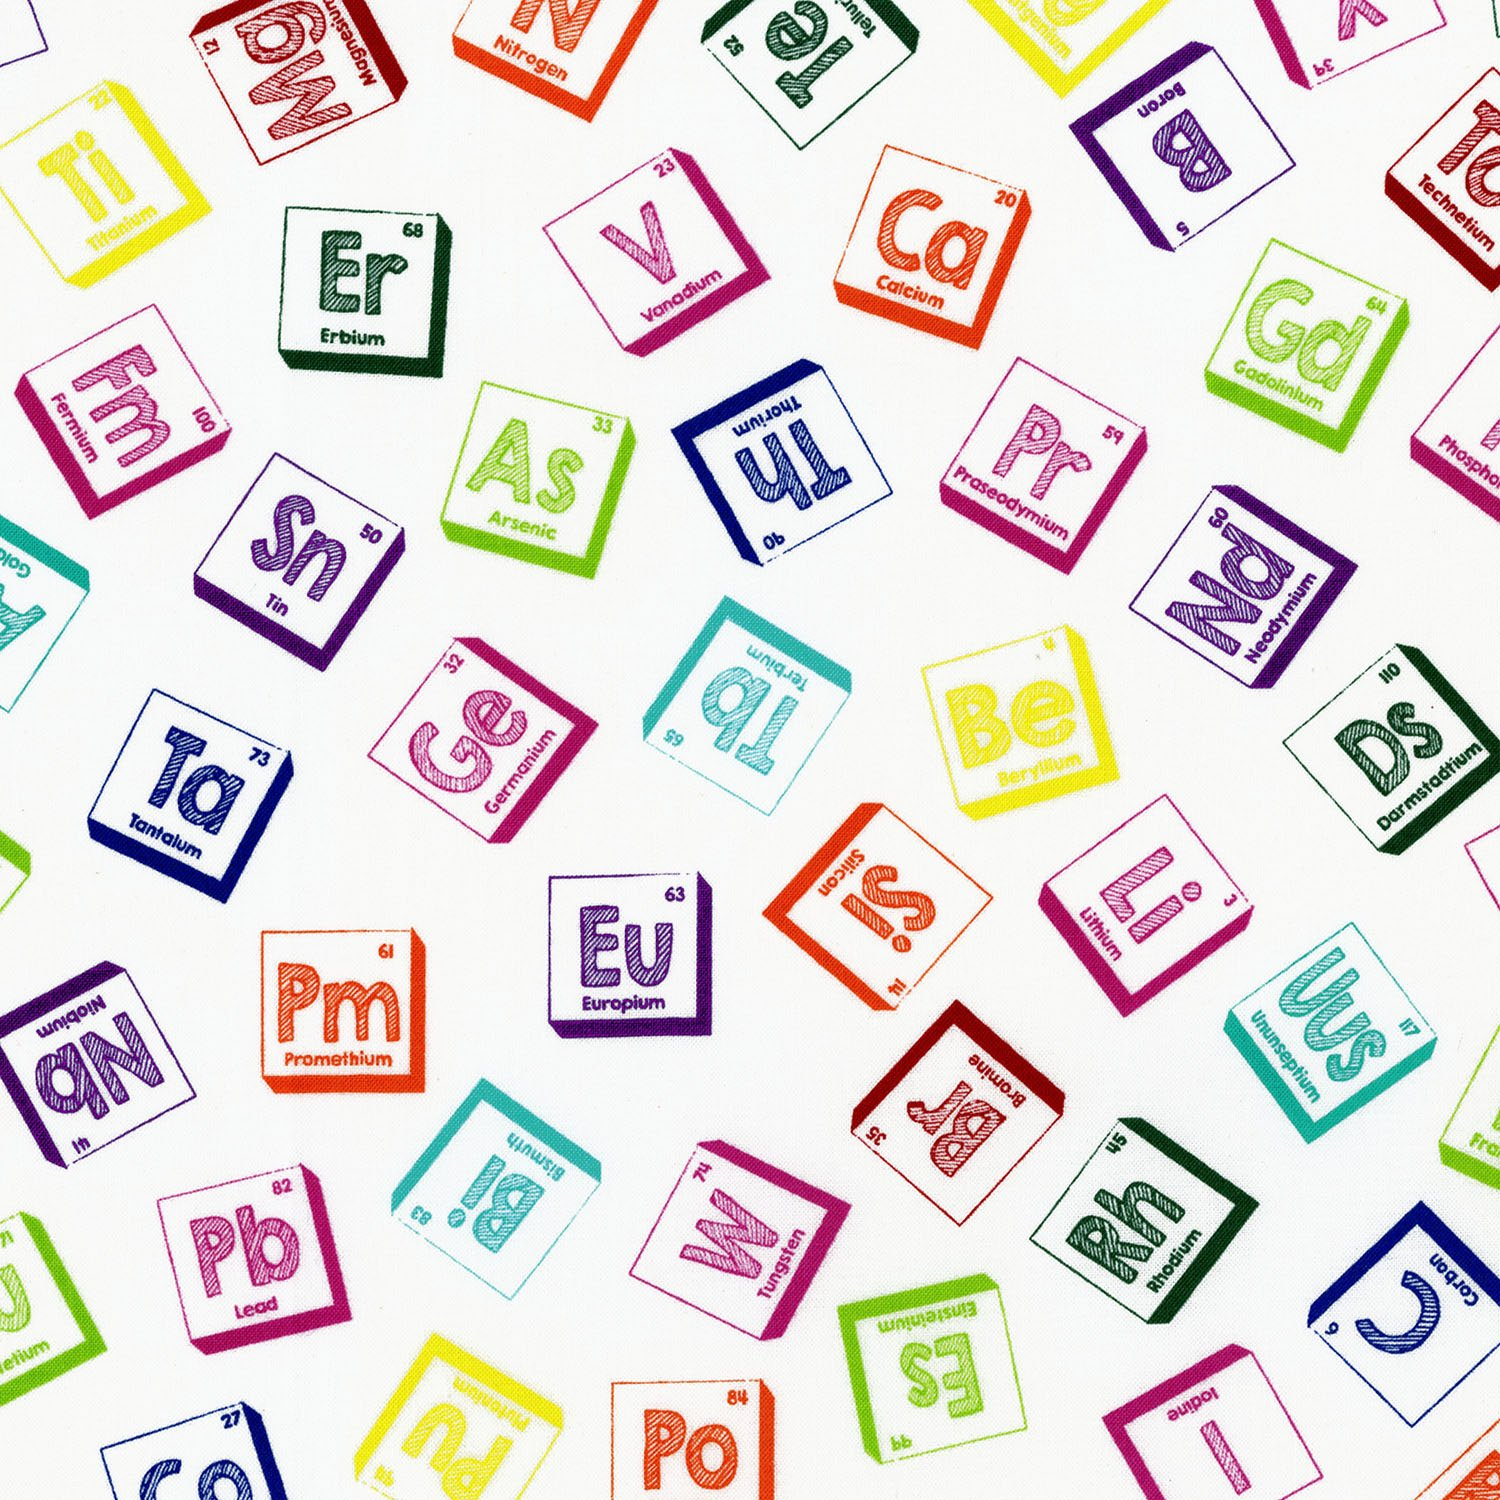 Geekery periodic table scattered on white 2869 001 28690011608 geekery periodic table scattered on white 2869 001 urtaz Choice Image